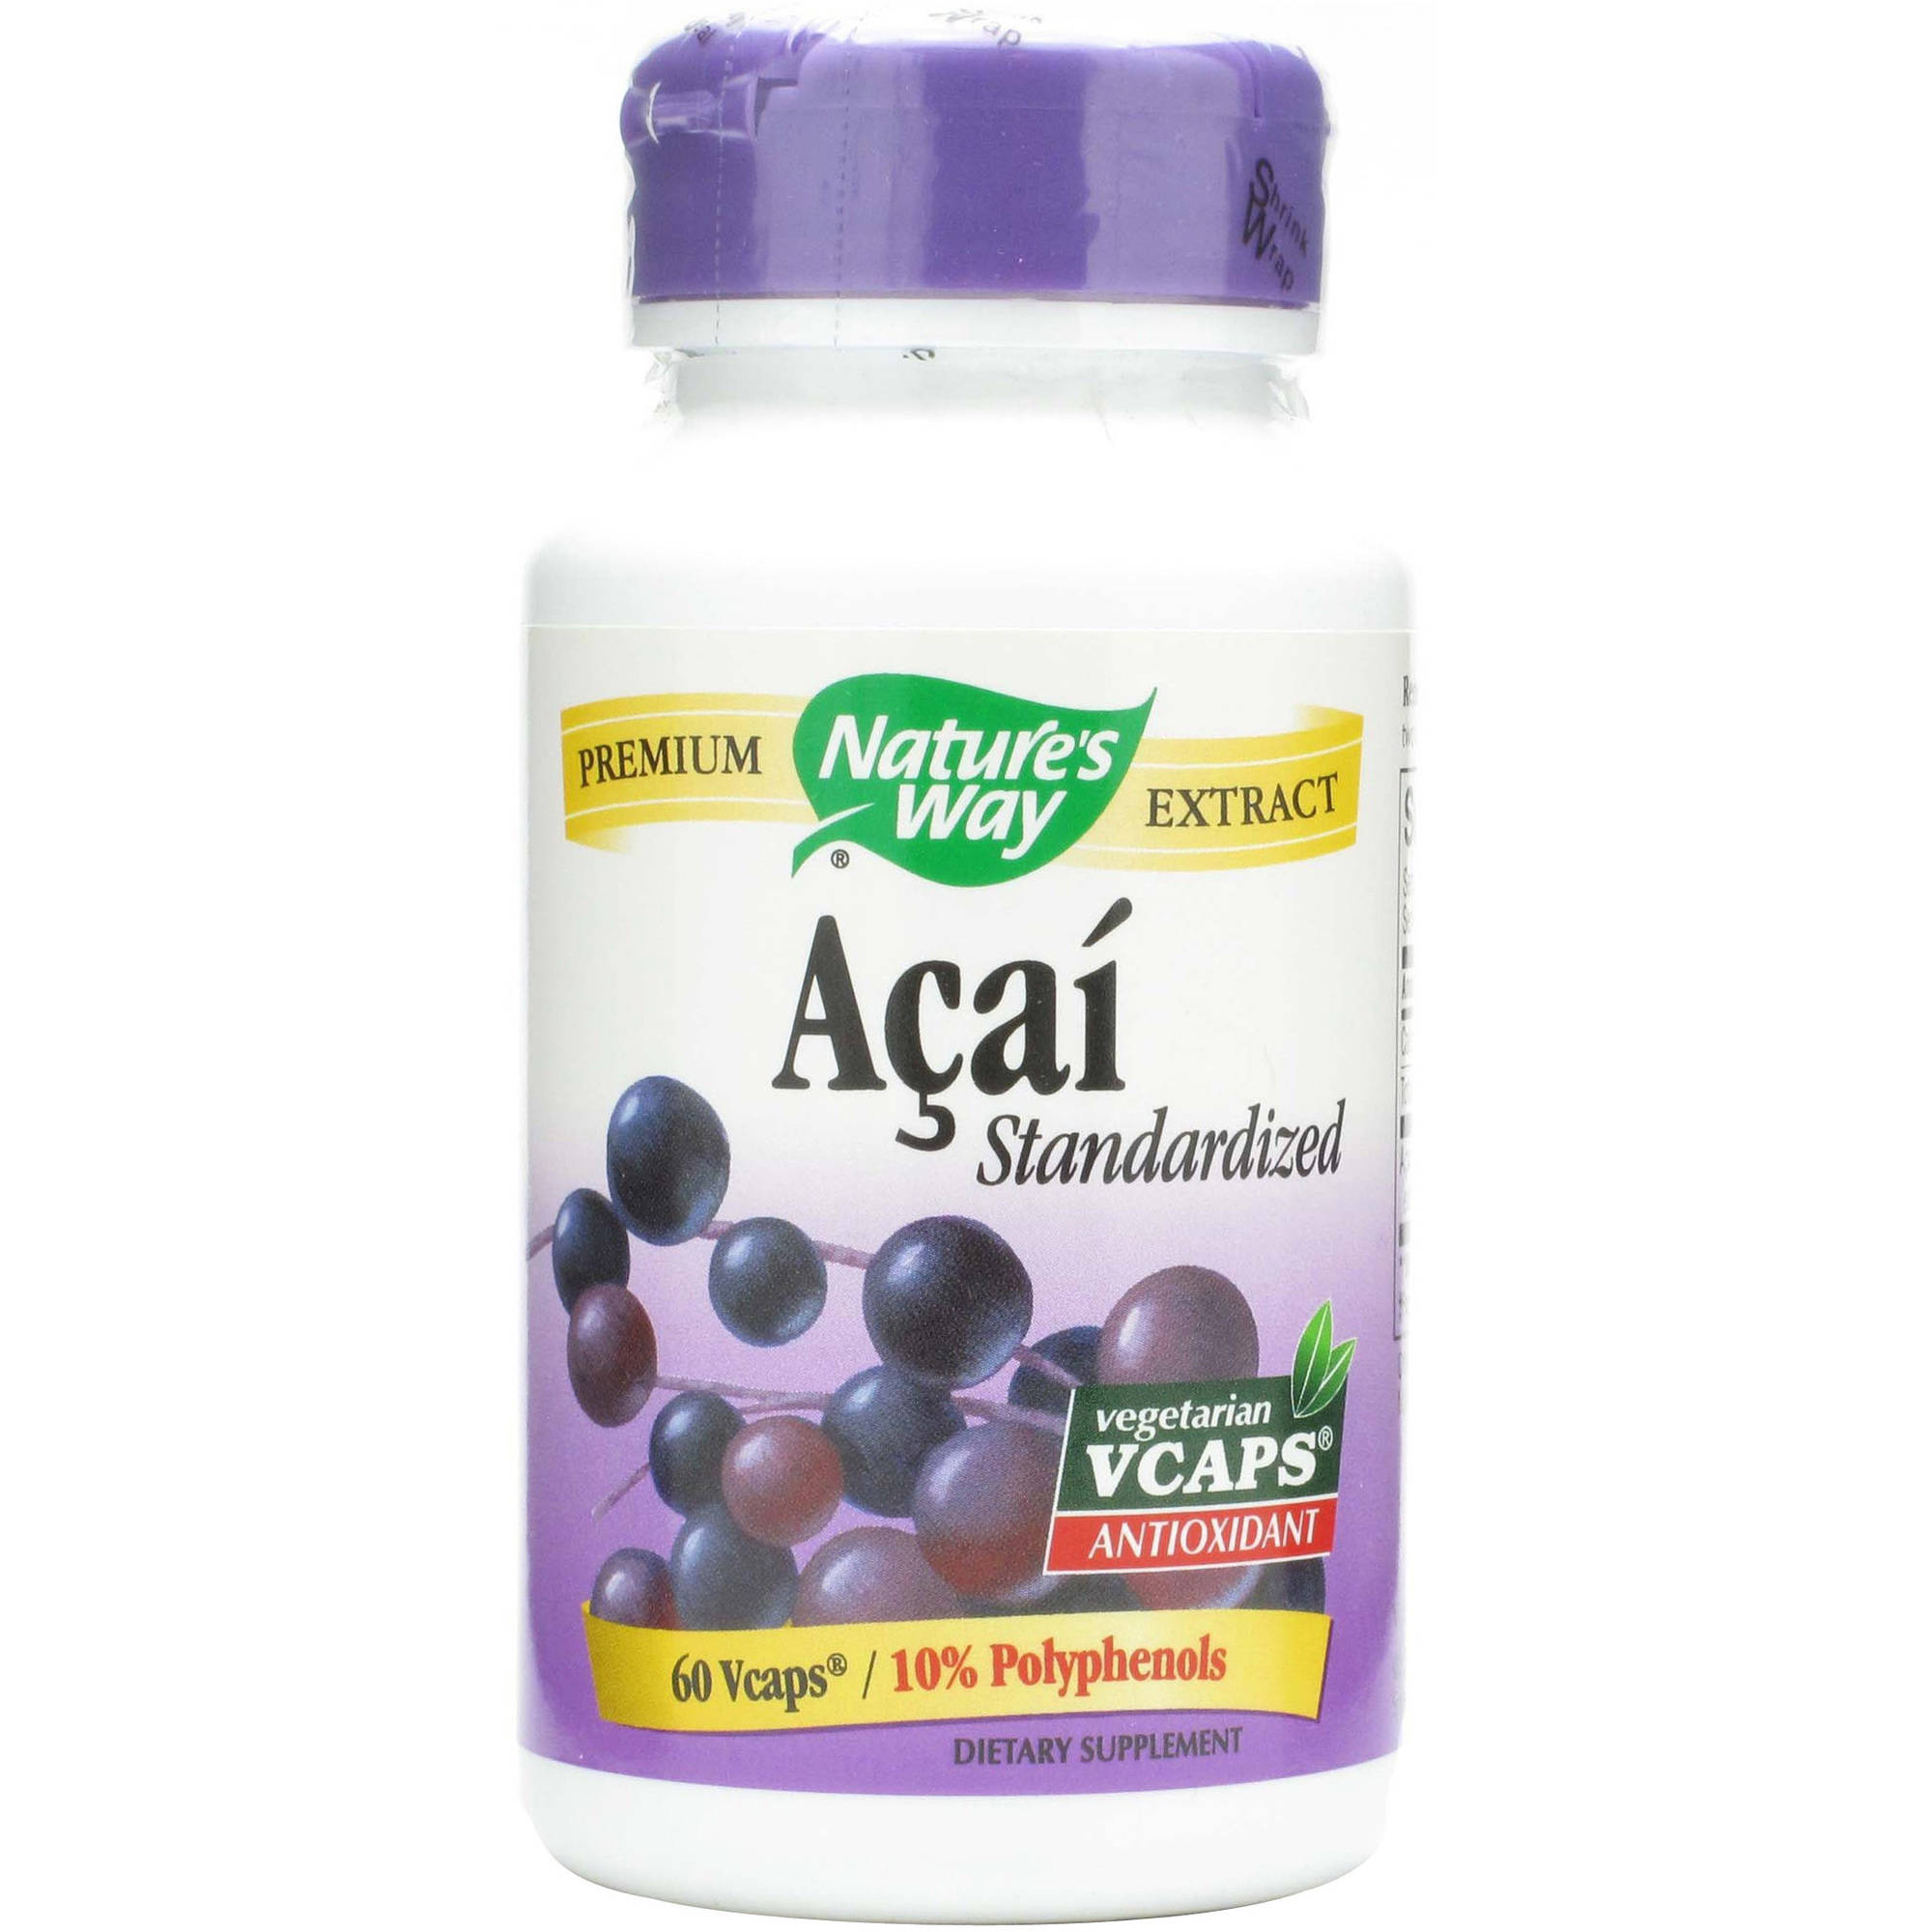 Nature's Way Standardized Acai Capsules, 60 CT